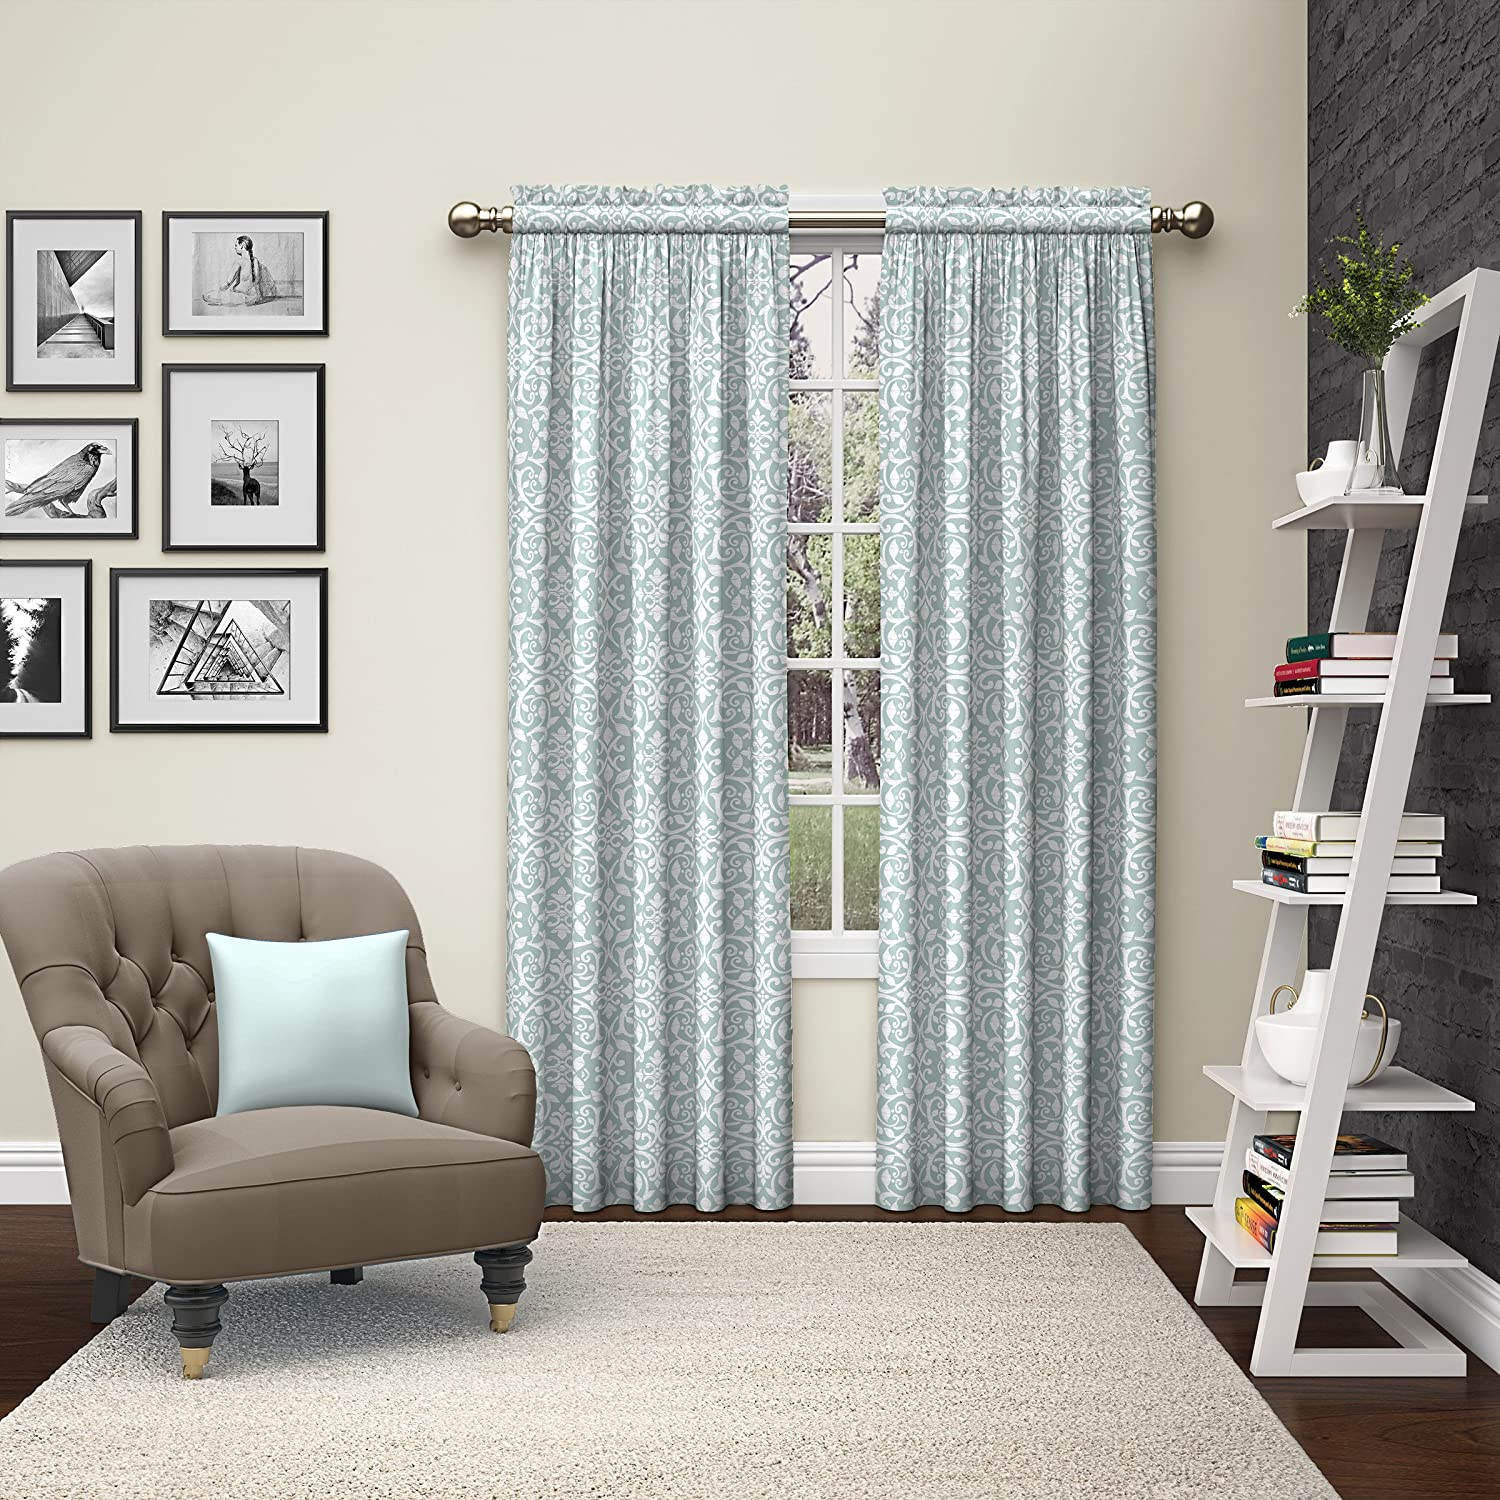 Pairs to Go Eclipse 15615056X063CHC Teller Window Curtains (2 Pack), 56 x 63, Chocolate 56 x 63 Ellery Homestyles